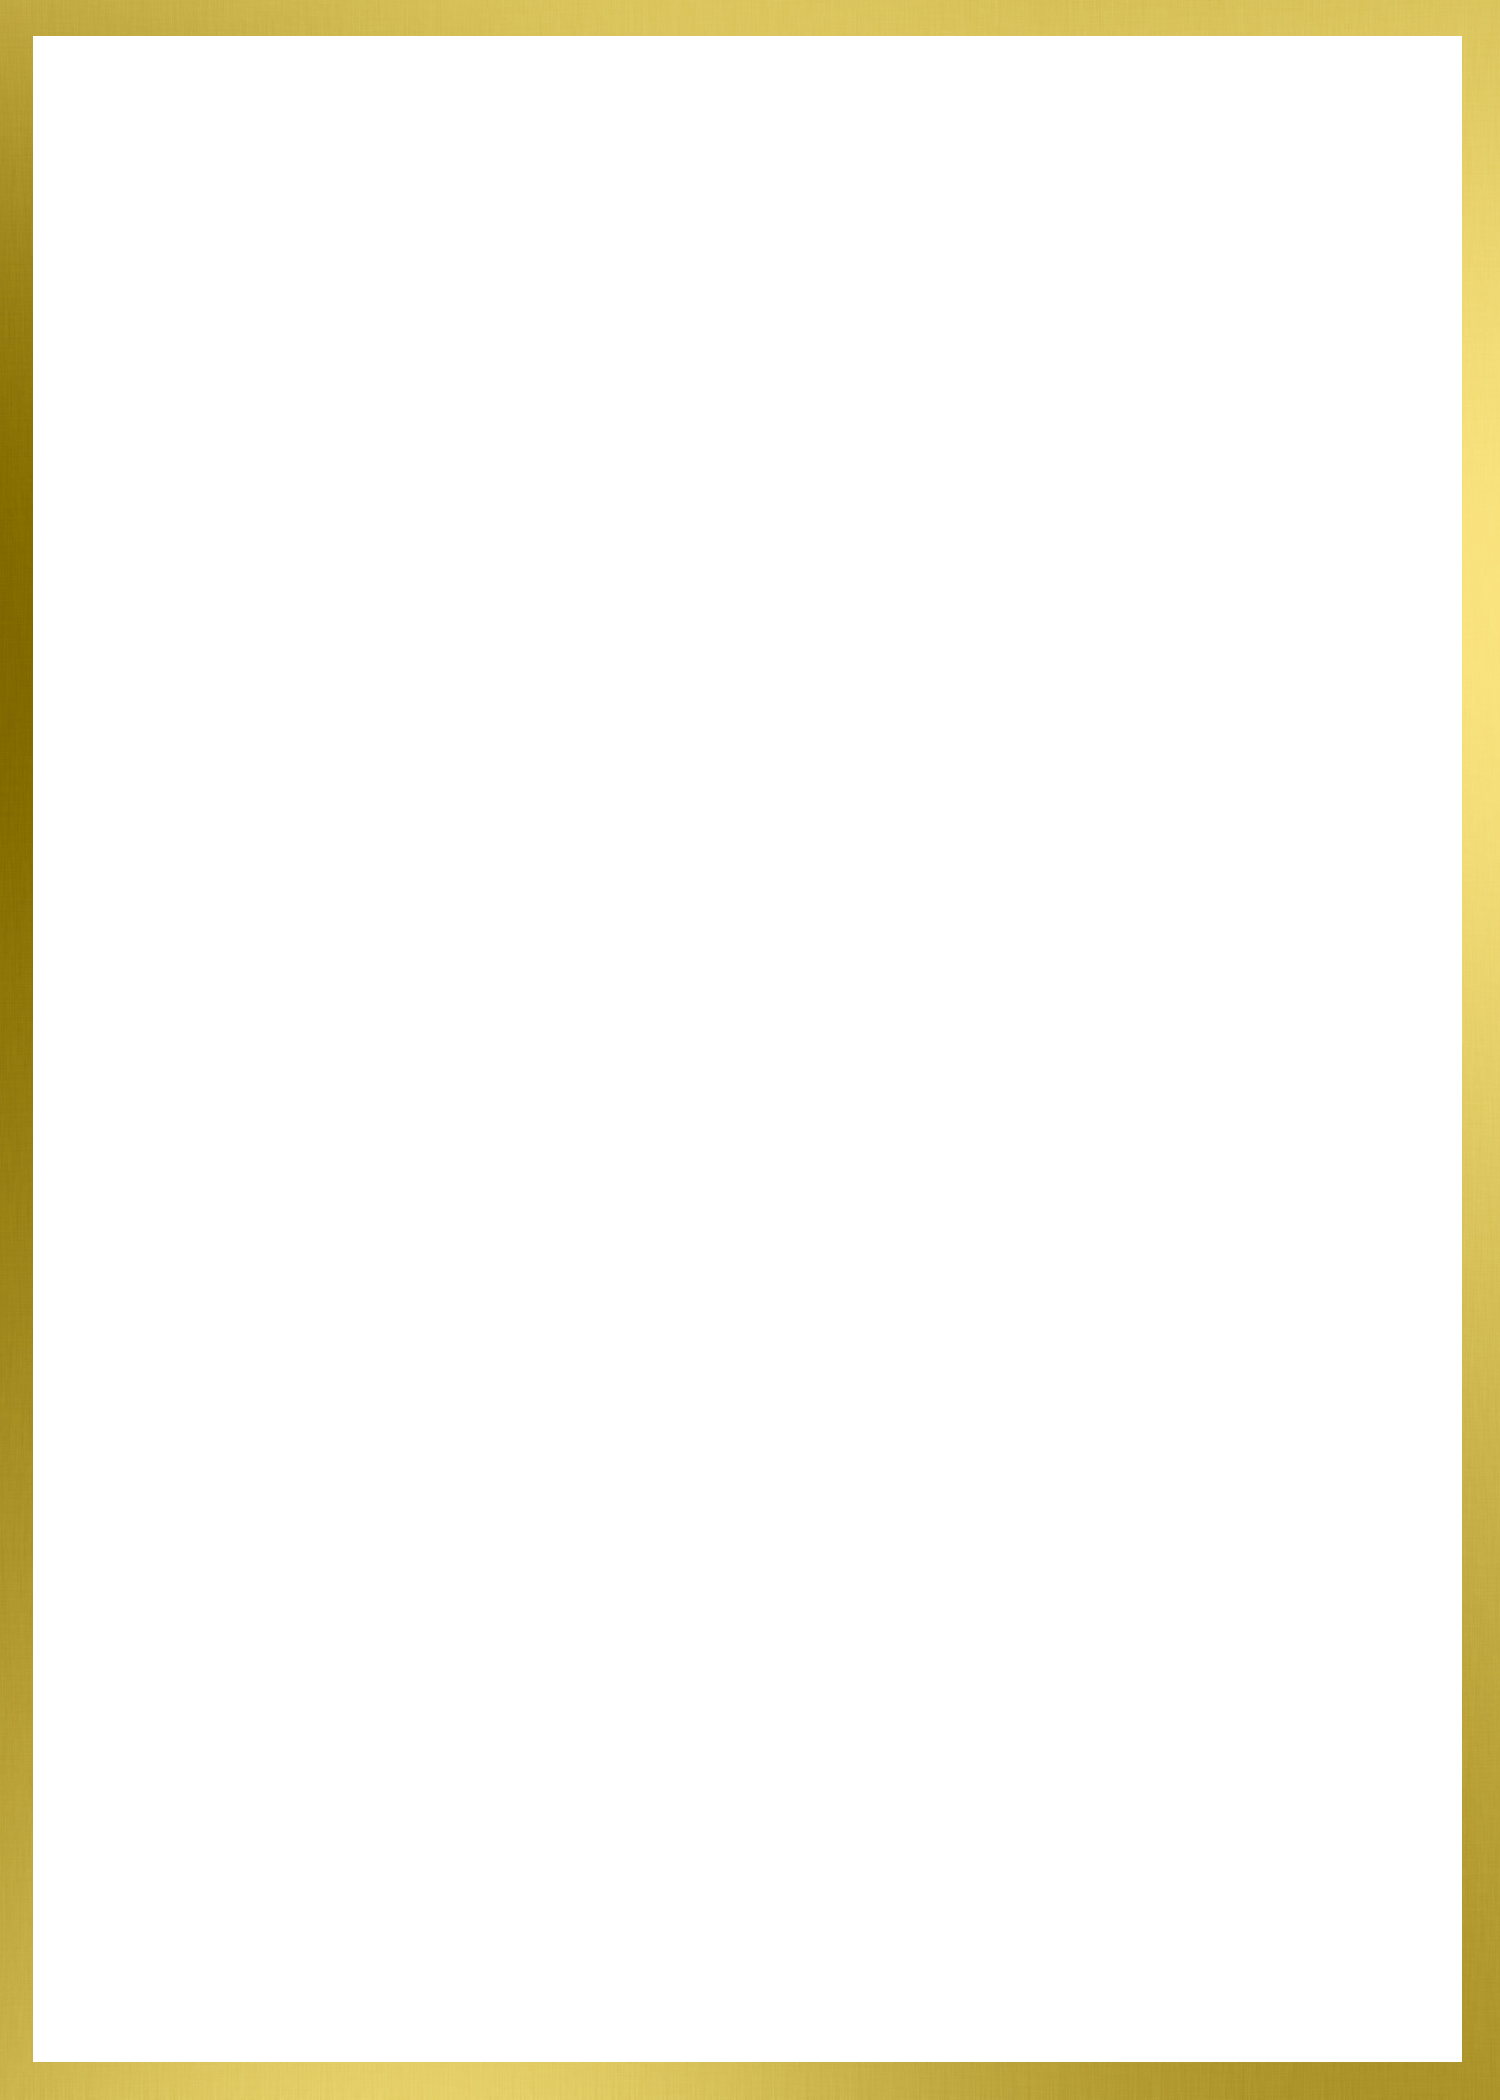 Play Novel Gold App Google Annie Lepenie PNG Image